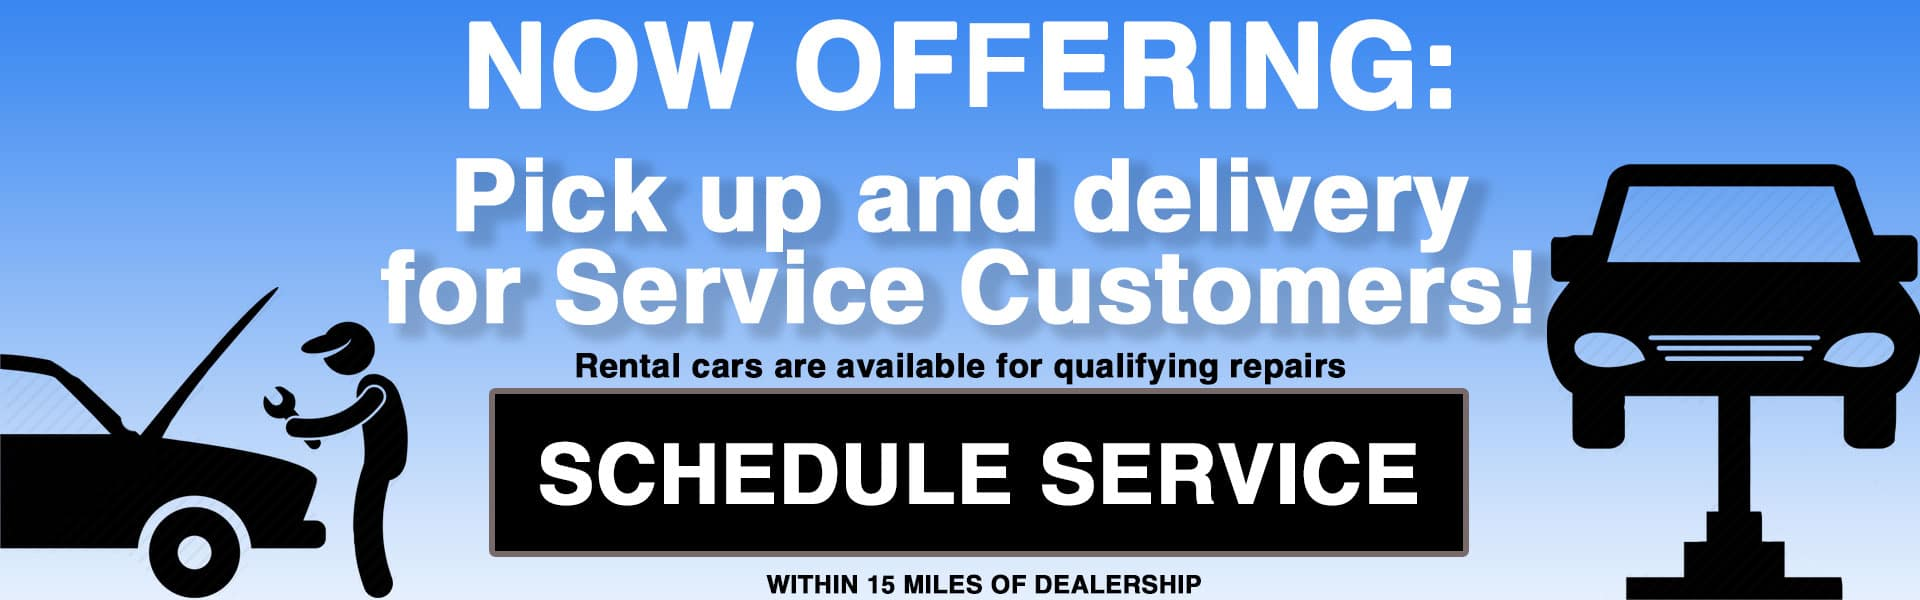 Now offering vehicle service pick up and drop off. Diehl Automotive Chrysler Jeep Dodge Ram Toyota Volkswagen Mitsubishi Chevrolet Buick Cadillac